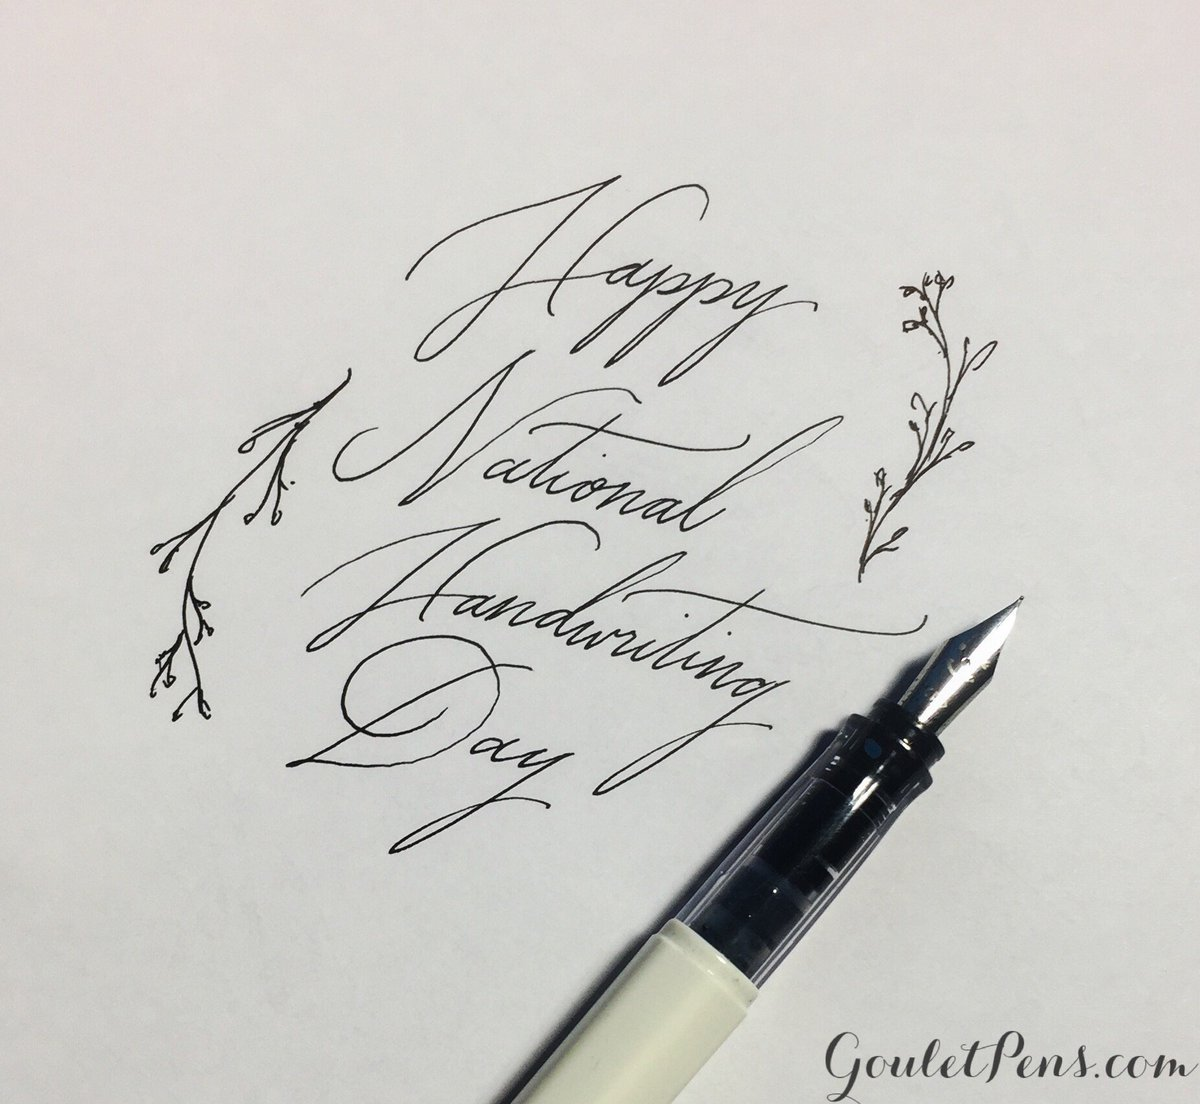 It\'s #NationalHandwritingDay! What pen & ink are you using today to celebrate?